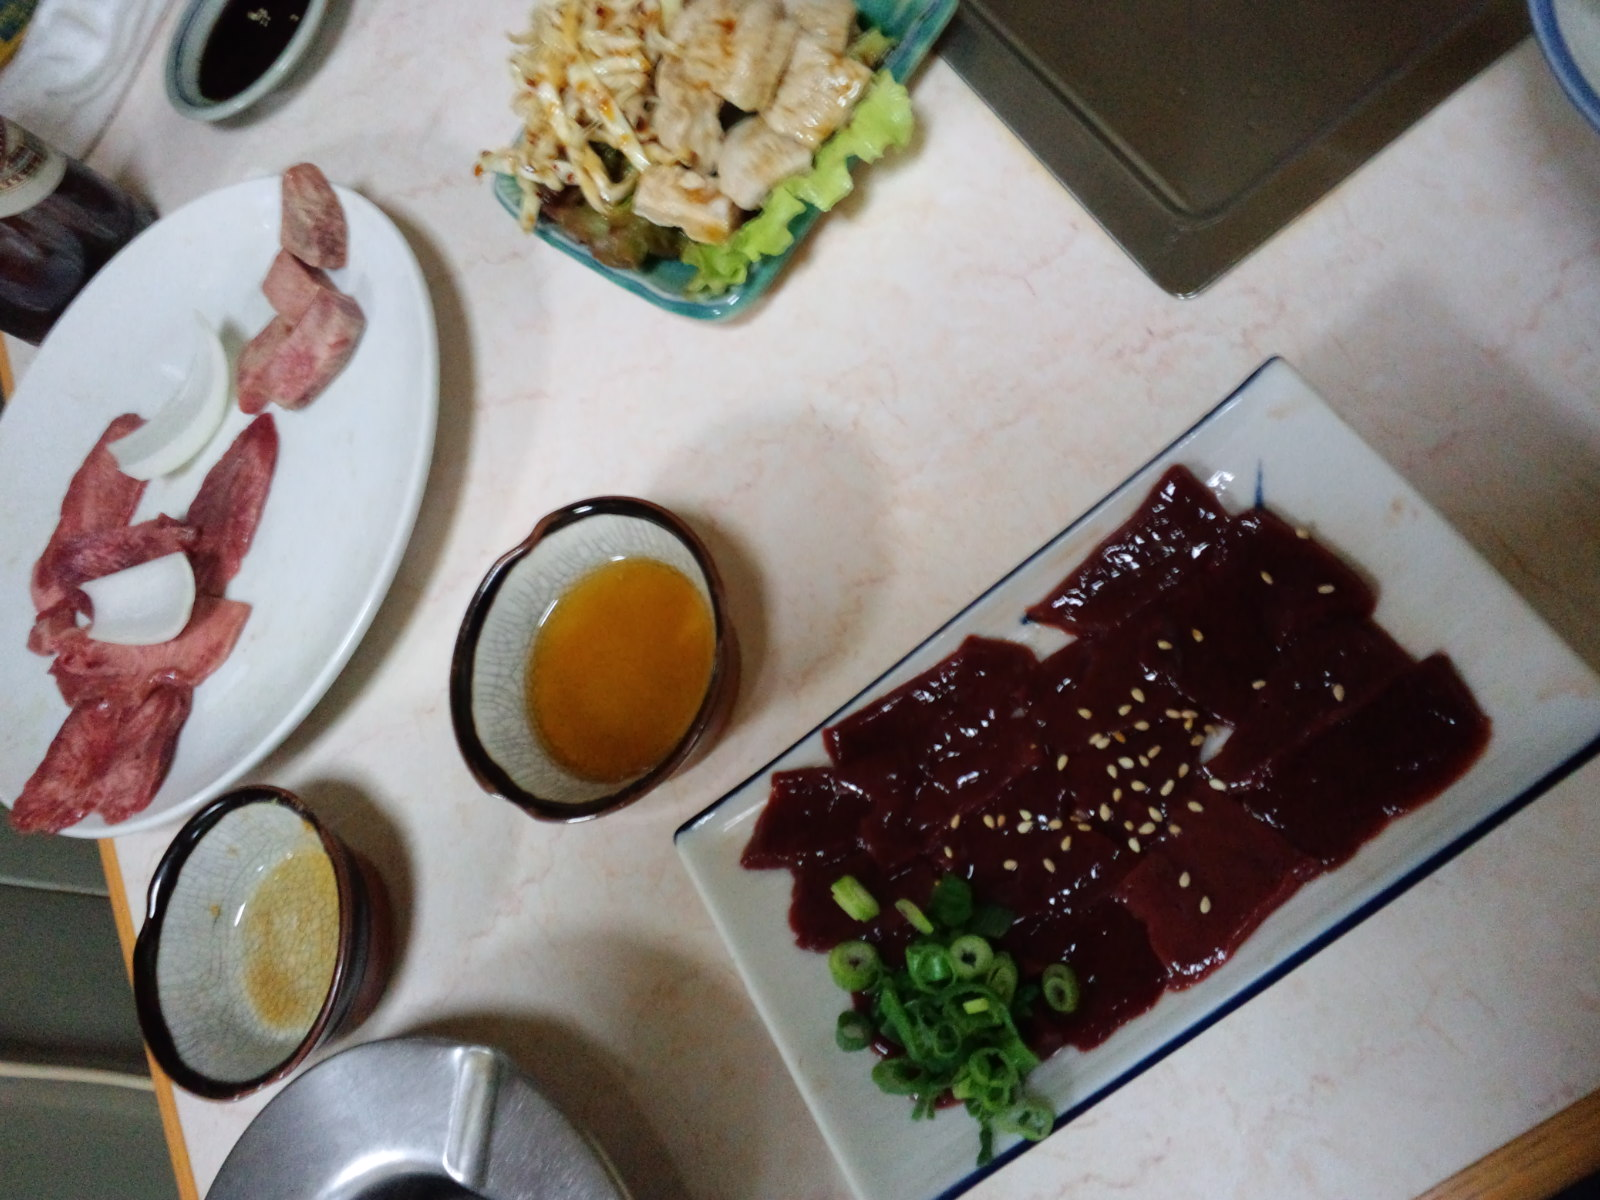 Thanks a lot!!